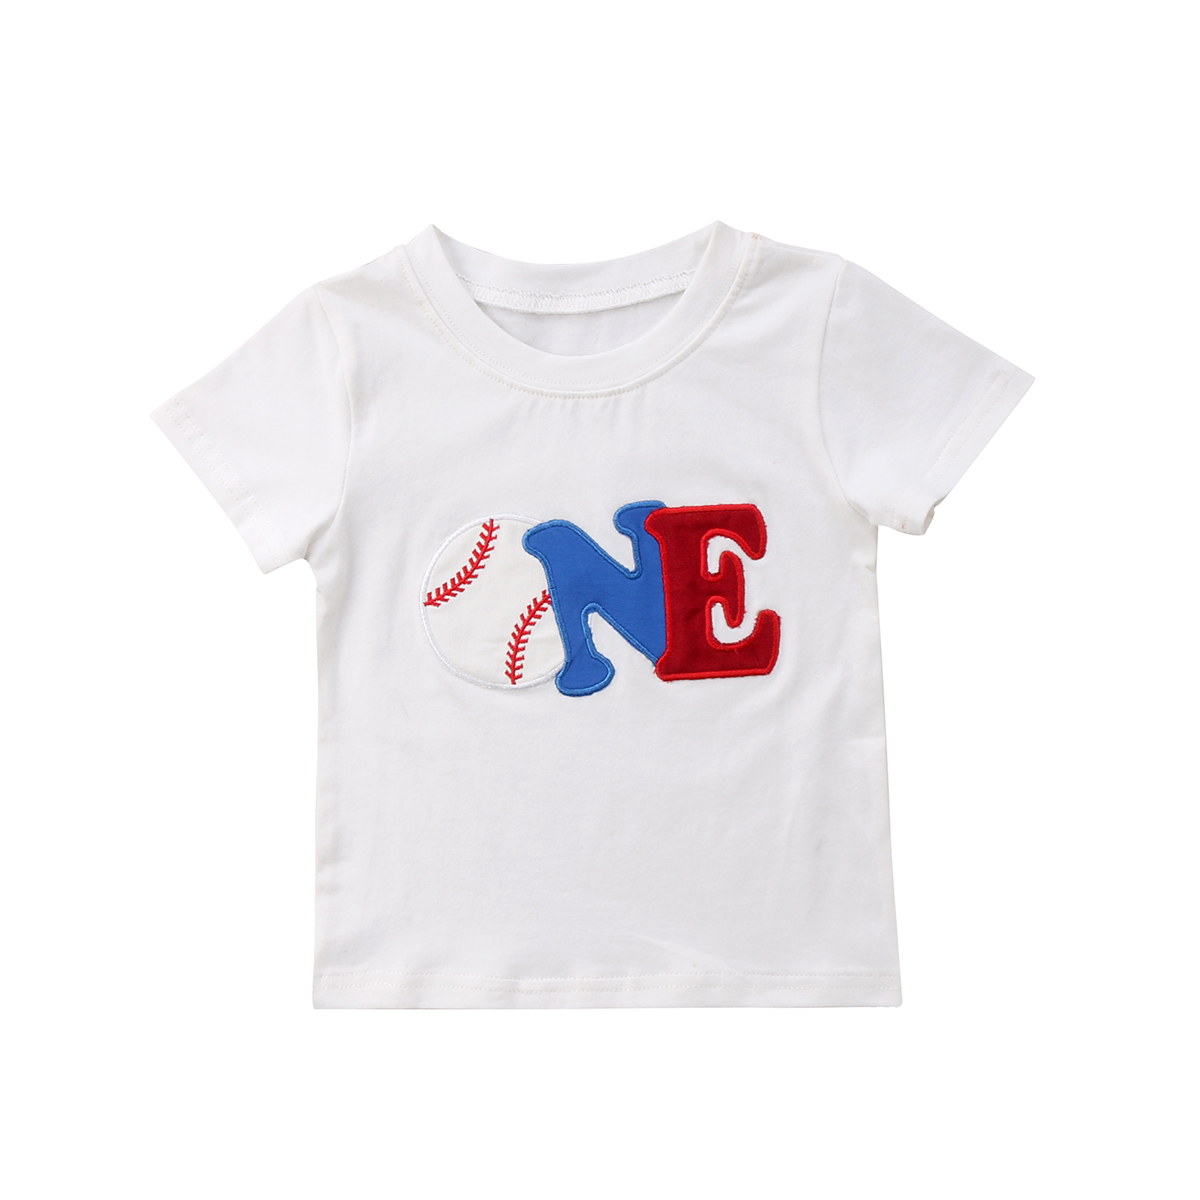 Fashion Baby Girl Boy T-shirt 2018 New Kids Birthday Clothes Infant Baby Boy Clothes Summer Tops Baseball Printed Top T-shirts